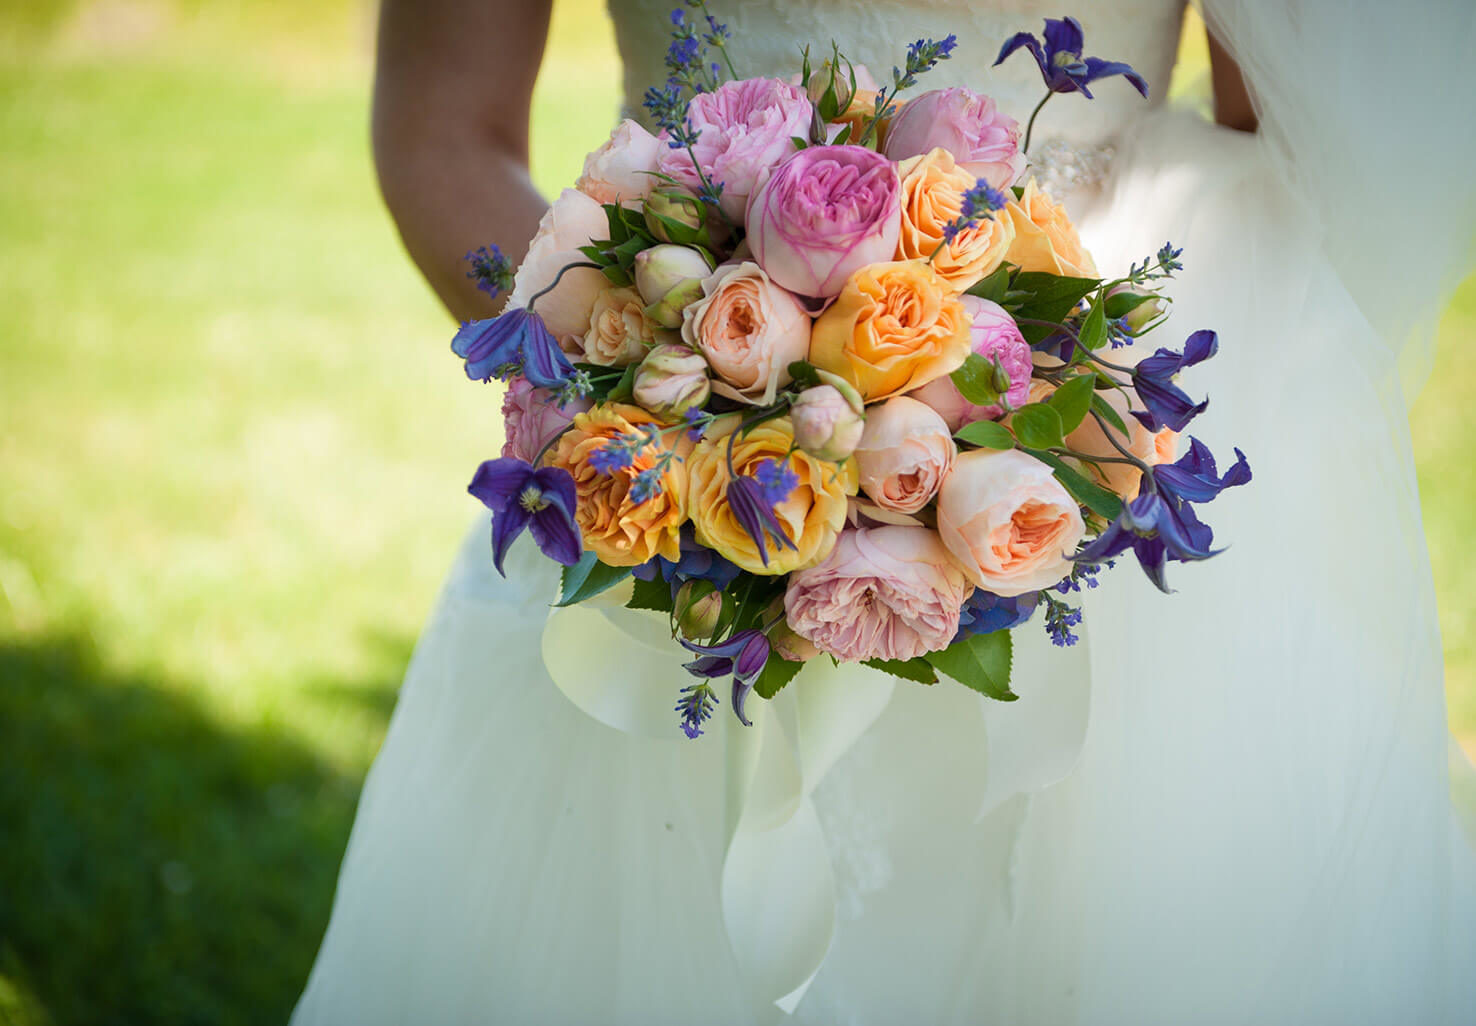 bride holding a colorful bouquet of flowers